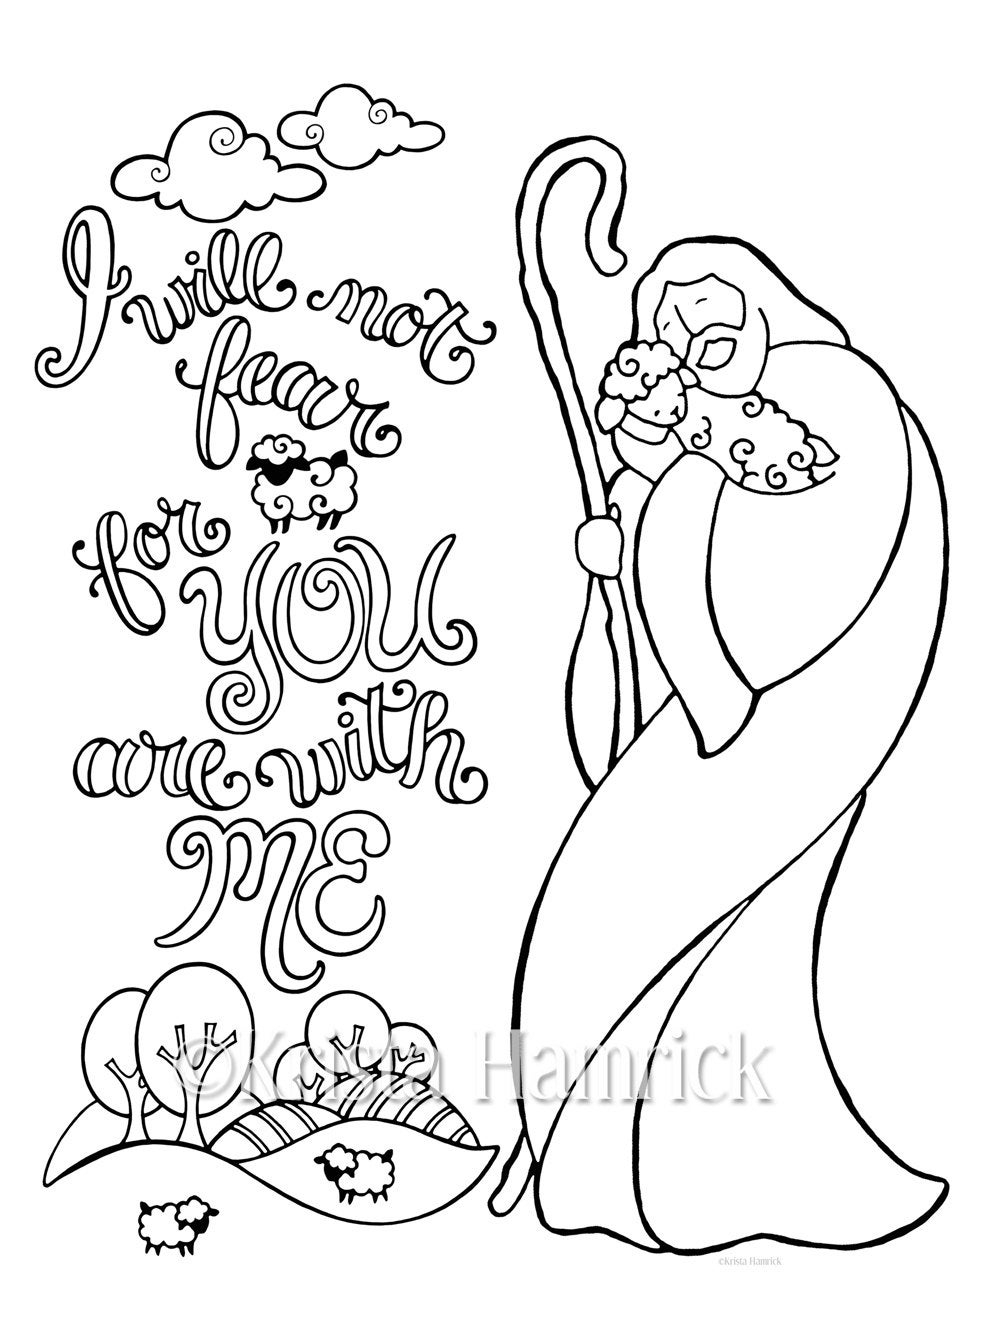 The Good Shepherd Coloring Page Good Shepherd Coloring Page In Two Sizes 85x11 And Bible Journaling Tip In 6x8